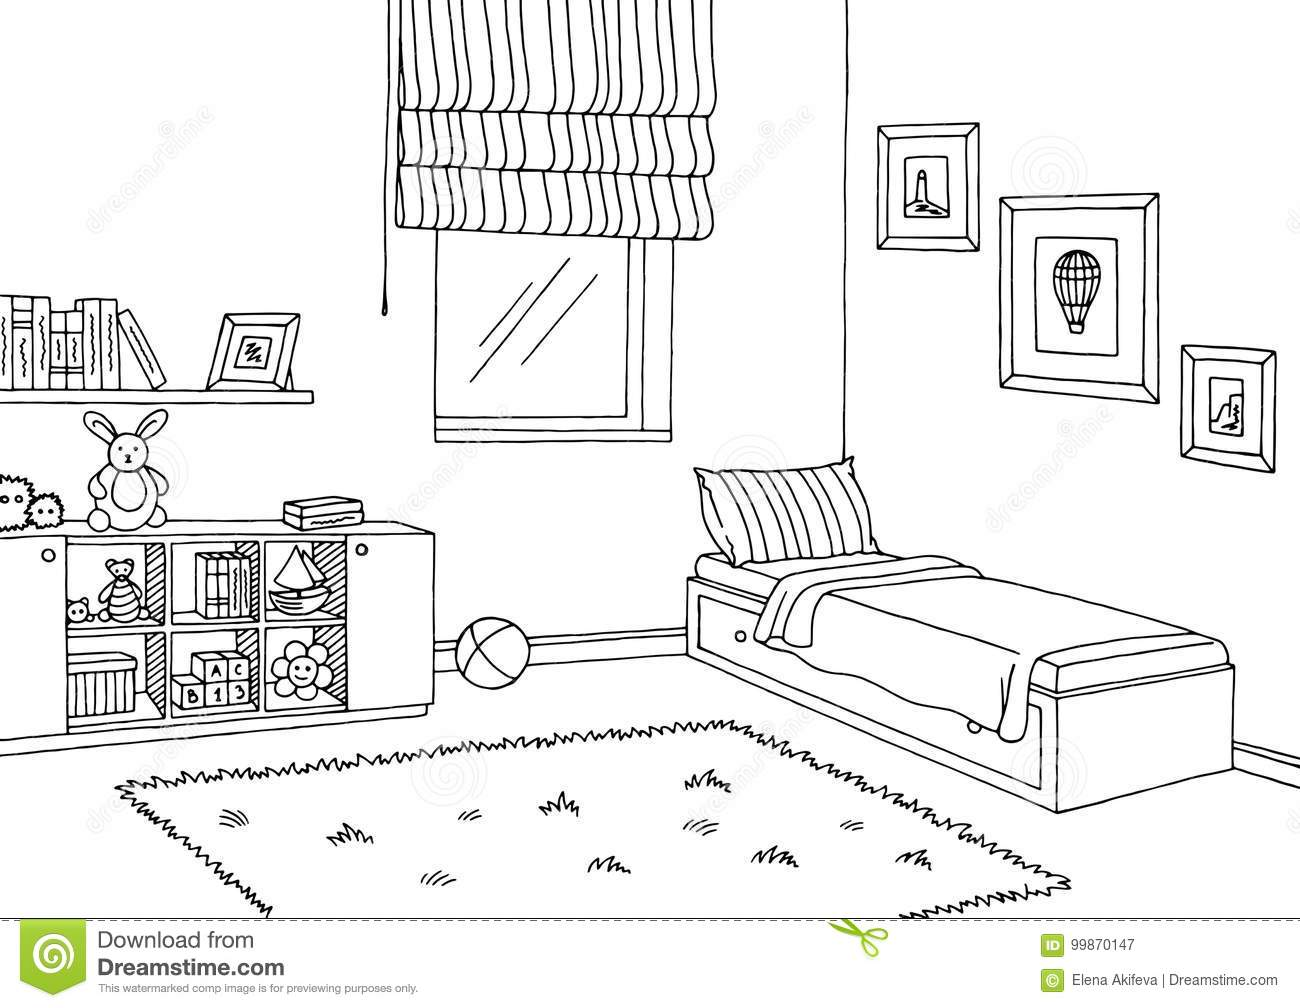 Children Room Graphic Black White Interior Sketch